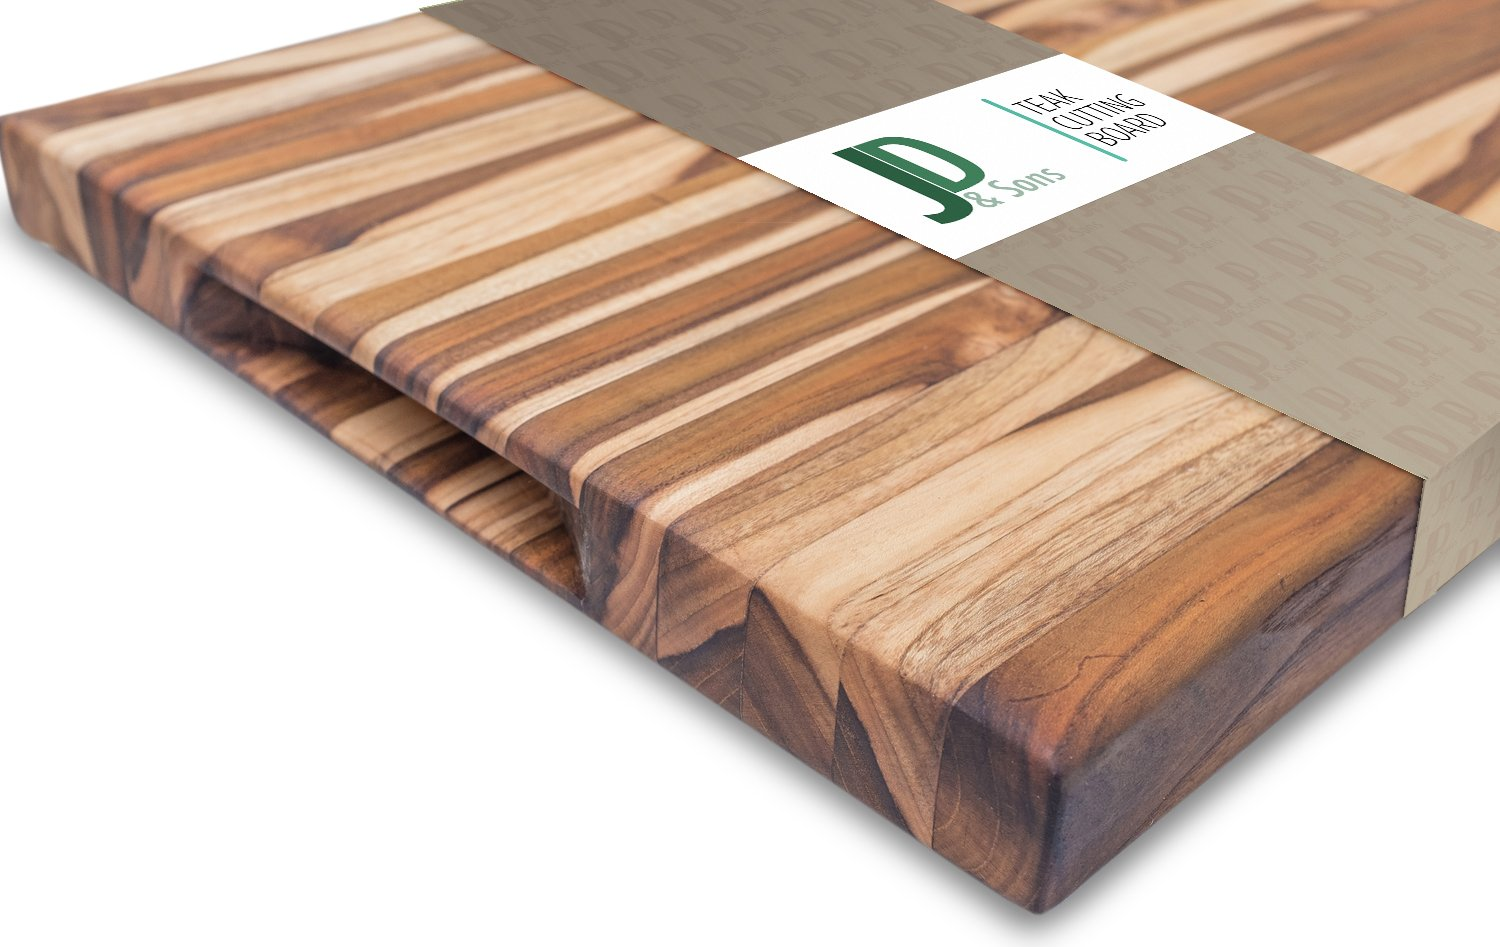 JD&Sons Teak Wood Large Cutting Board Perfect for Home Chefs & Professionals Gentle to Knife Durable Cut Board (20x15x1.5 in.) by JD&Sons (Image #3)